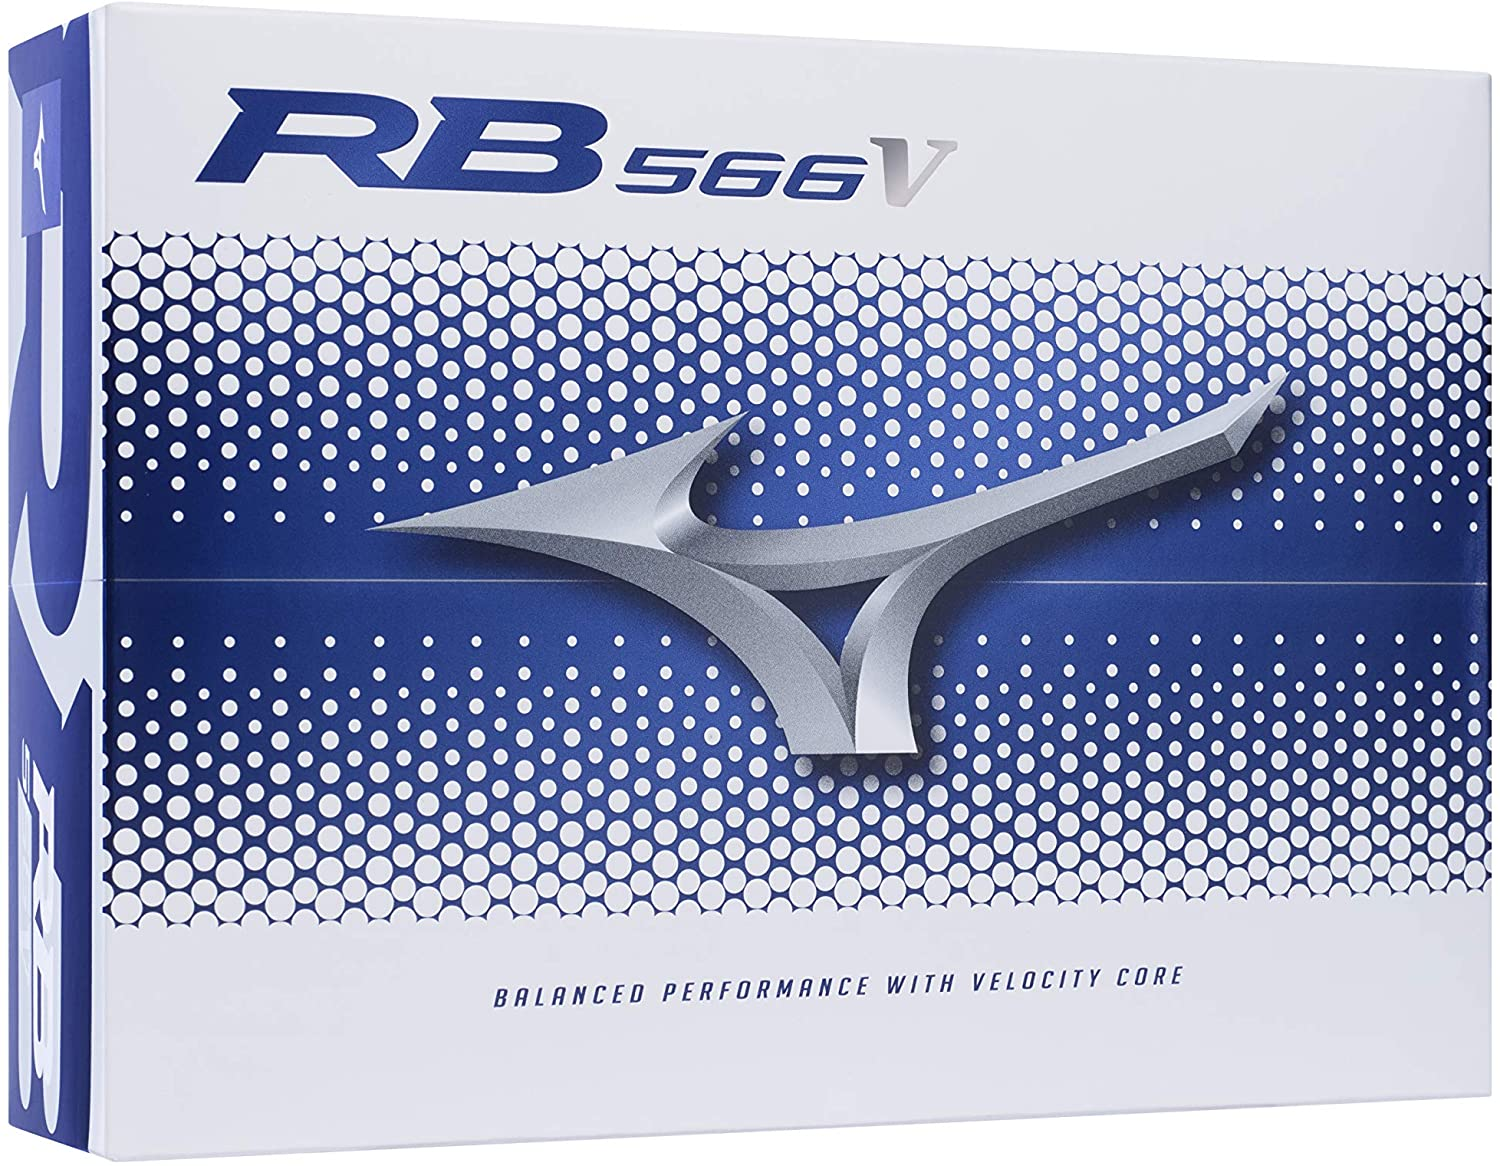 mizuno rb566v golf balls review